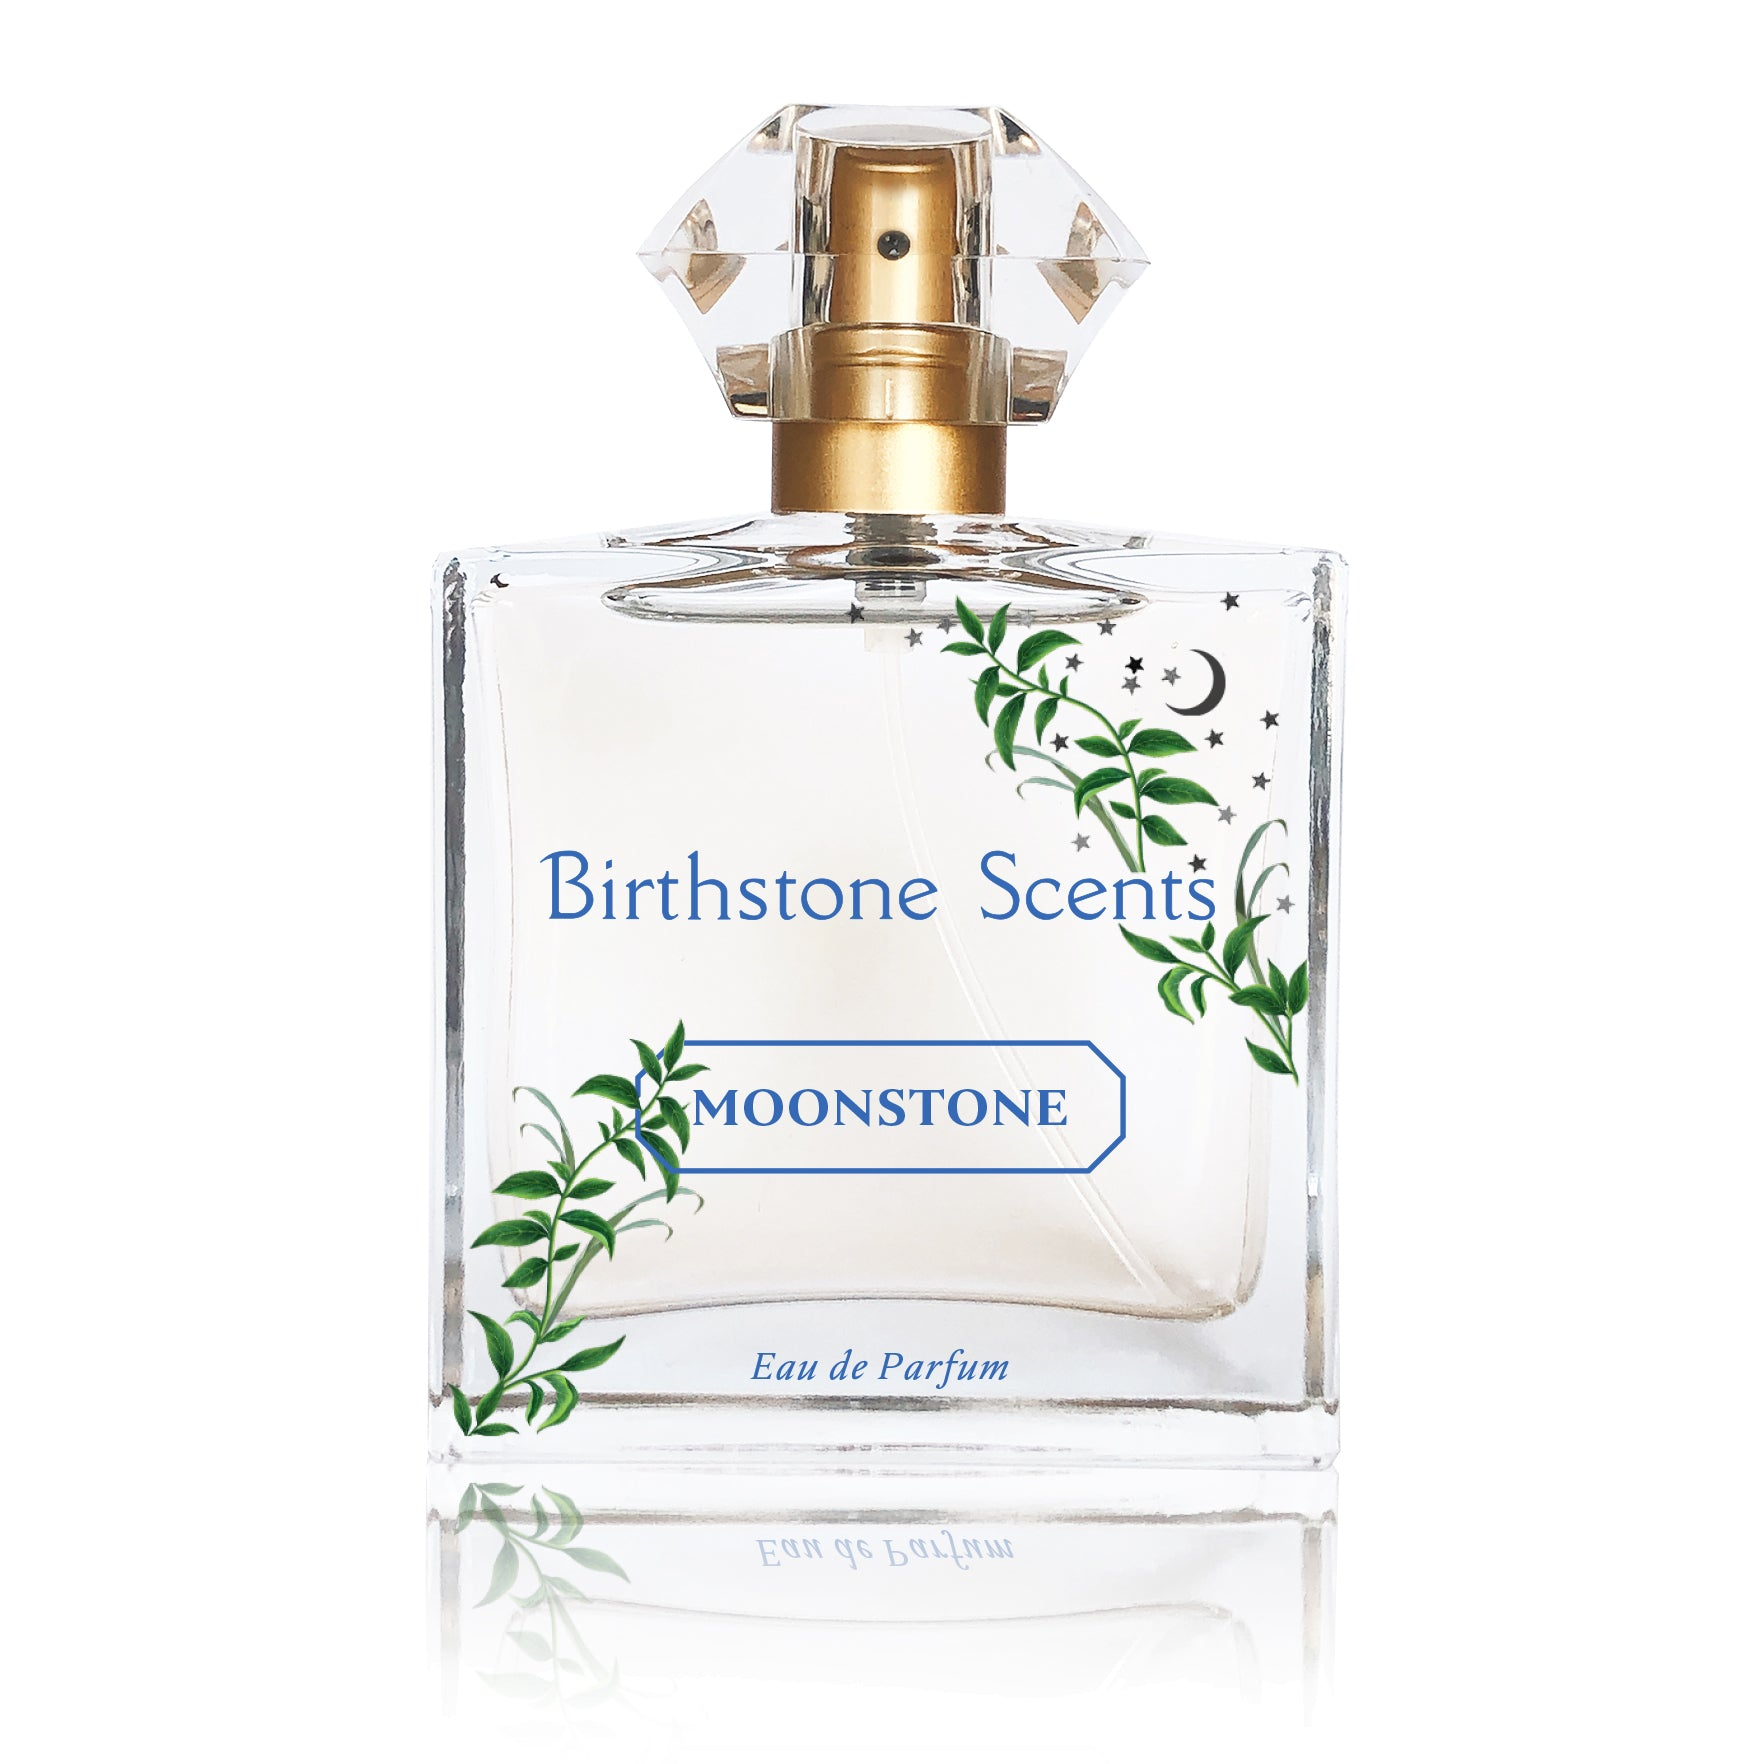 MOONSTONE PERFUME | June - Birthstone Scents